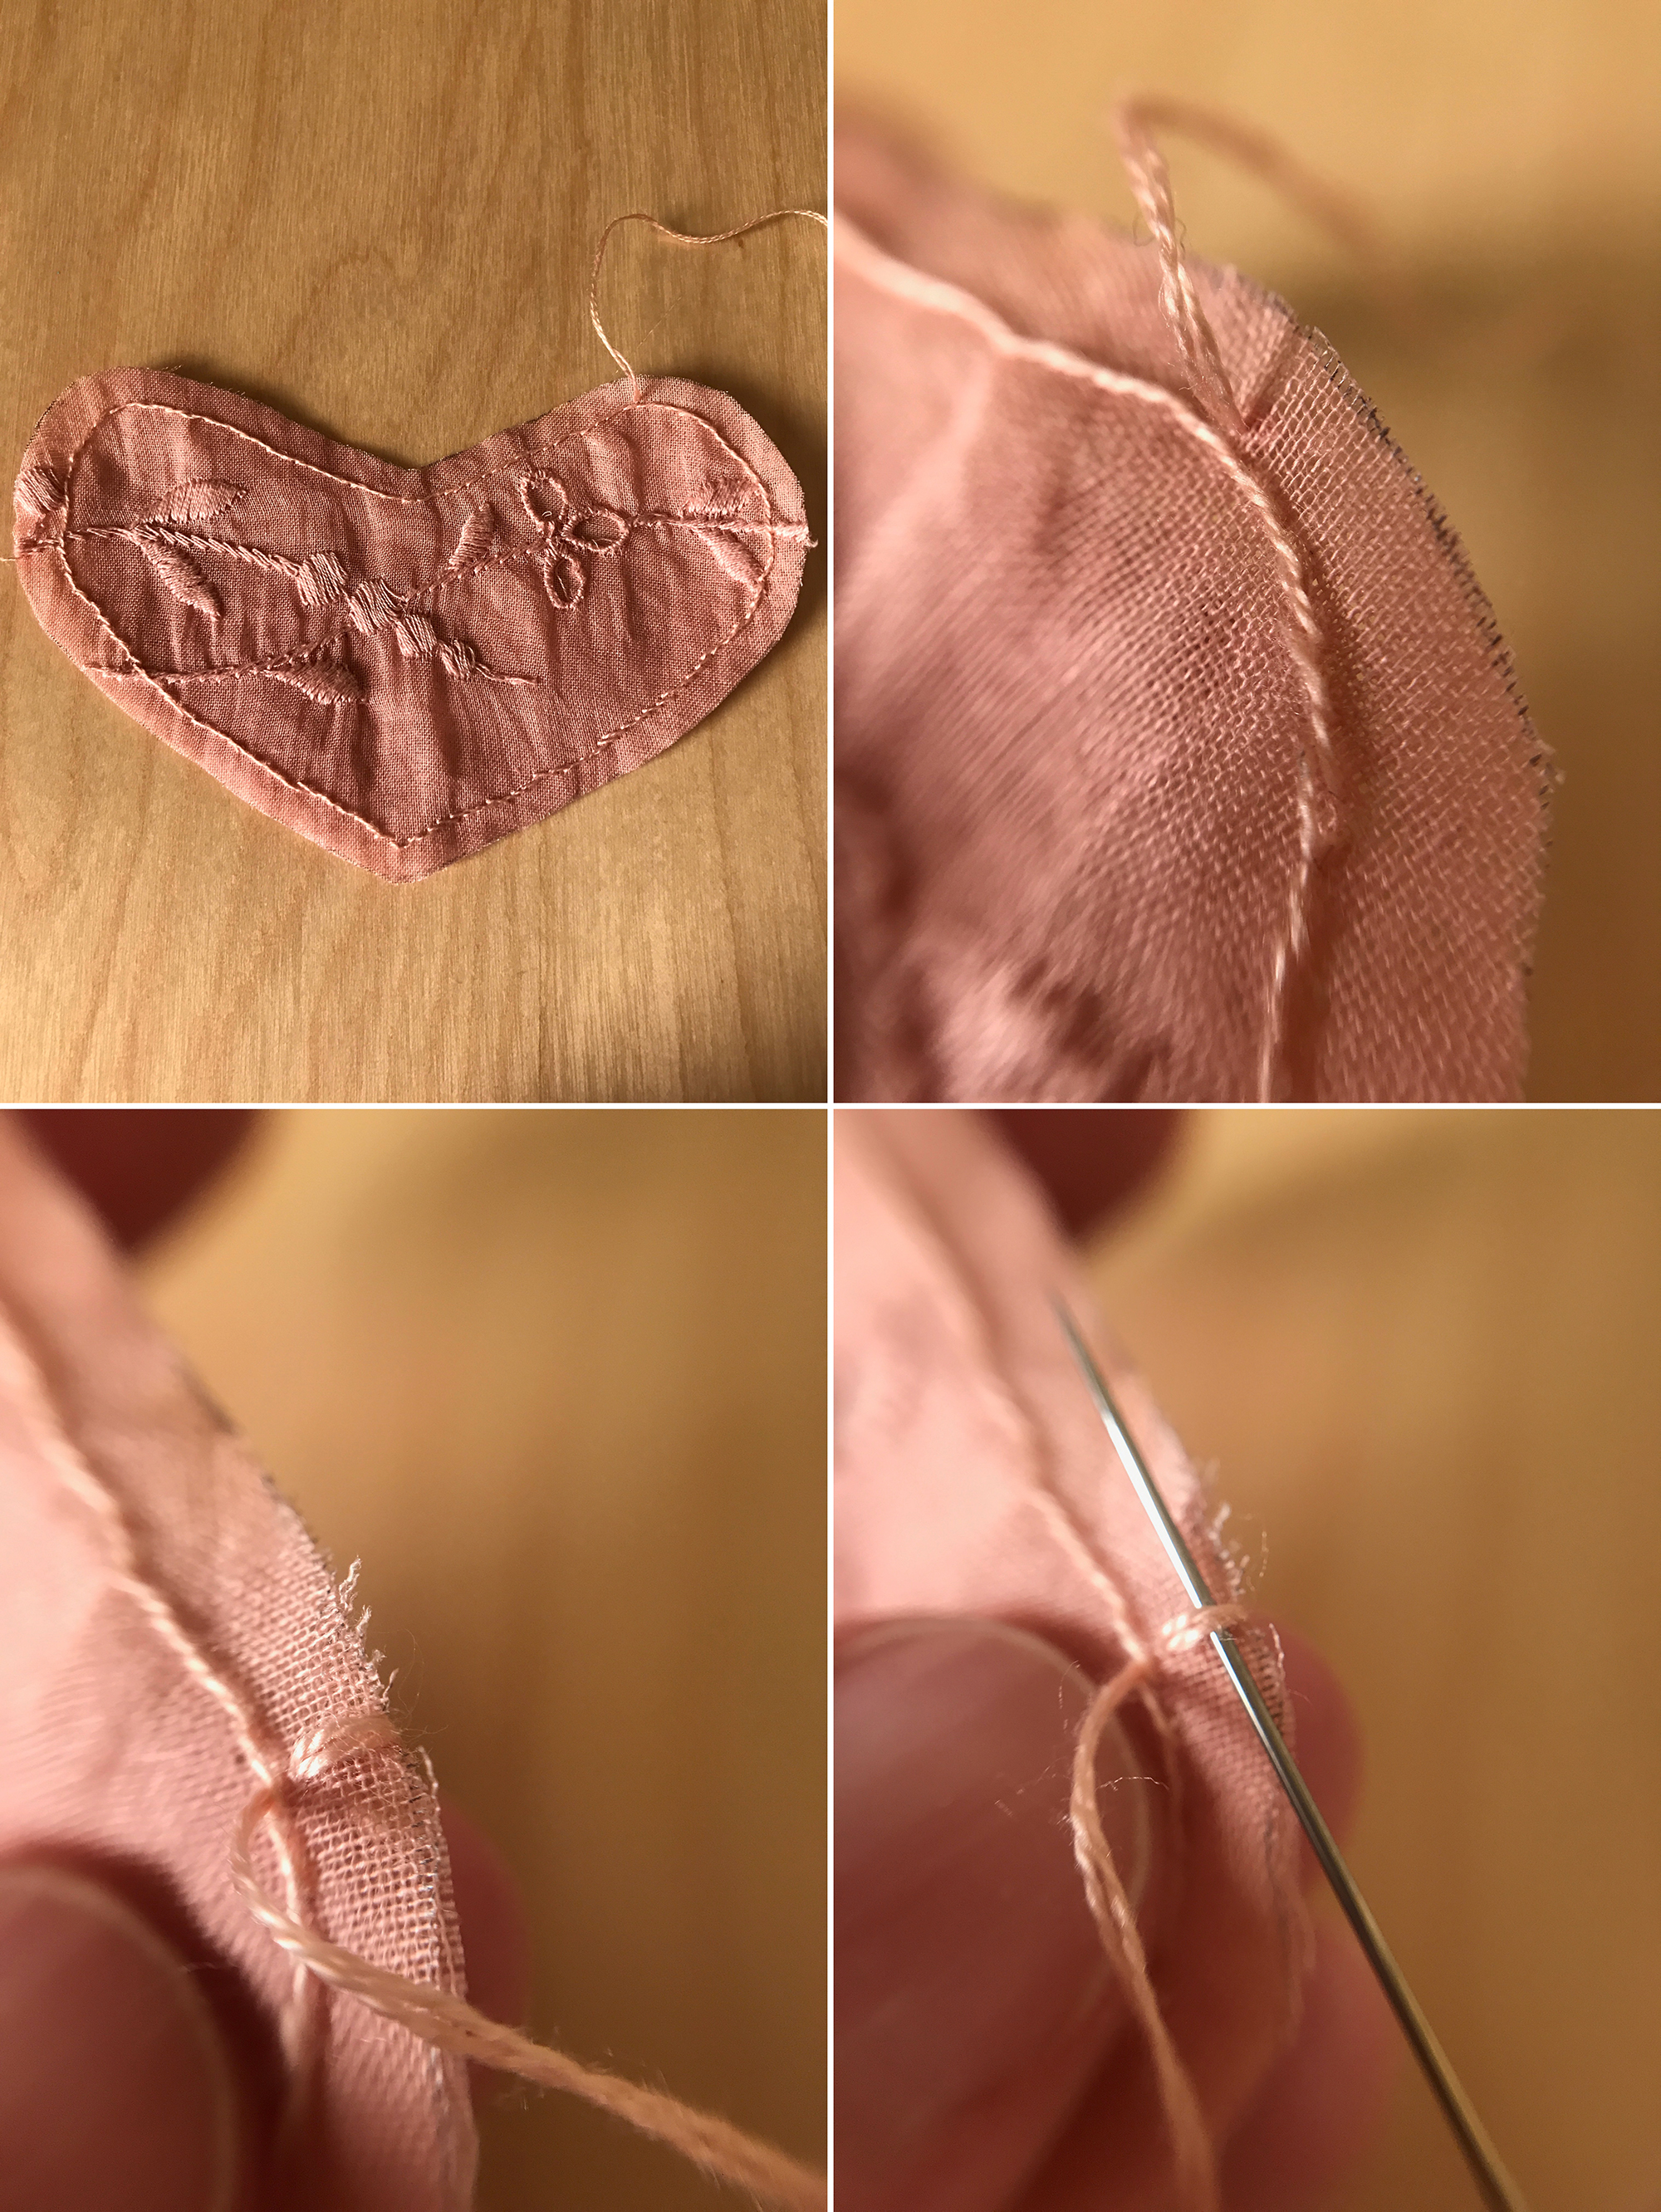 """21. Set the envelope aside and return to your sweet lace heart. You're now going to use blanket stitch (a.k.a., button-hole stitch) to both finish the edge as well as secure it to the back of the envelope. First you want to finish the portion that will not be secured to the envelope and will allow the heart to become a pocket. To begin, thread an embroidery needle with two strands of floss. Tie a knot at one end and insert the needle from back to front through only the top lace piece. Position this very close to the stitching that's already there and at the highest point of the right """"lobe.""""  22. (Close-up of positioning.)  23. Bring the needle around the work to the back and this time go through both pieces of fabric, coming out through the original top hole. This creates a loop.  24. Insert the needle through this stitch."""